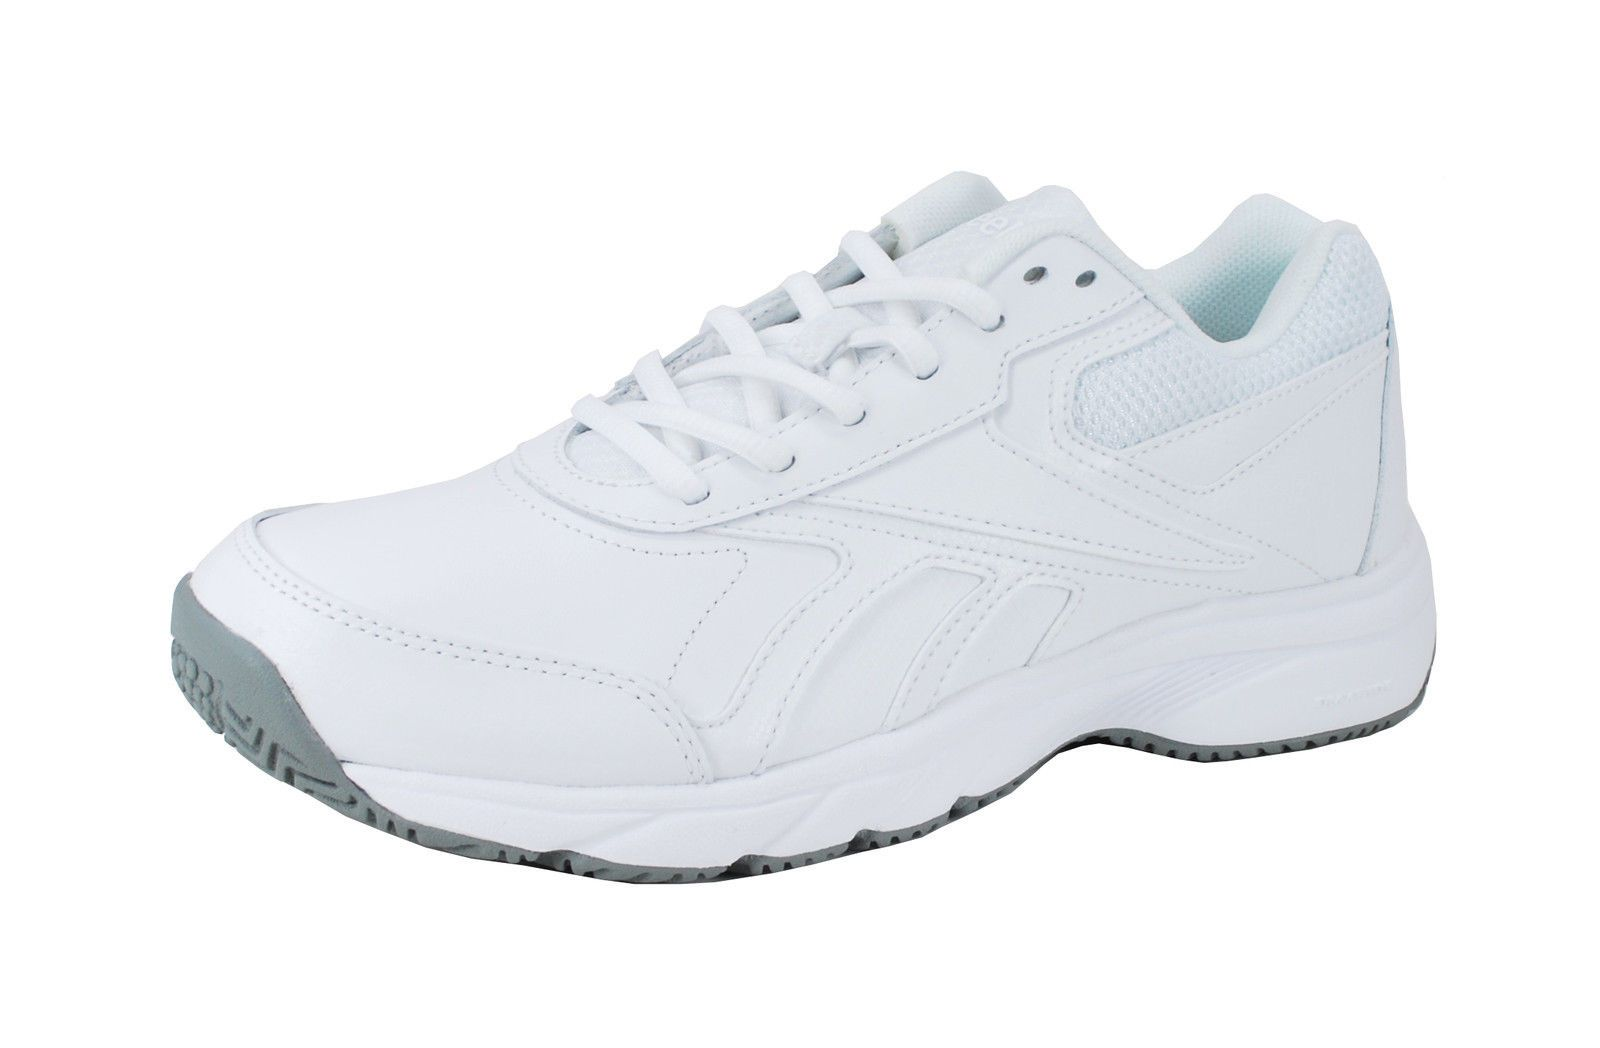 240a9aa1a1e Reebok Women Duty Proof Oil Slip Resistant Memory Foam Shoes White Gray